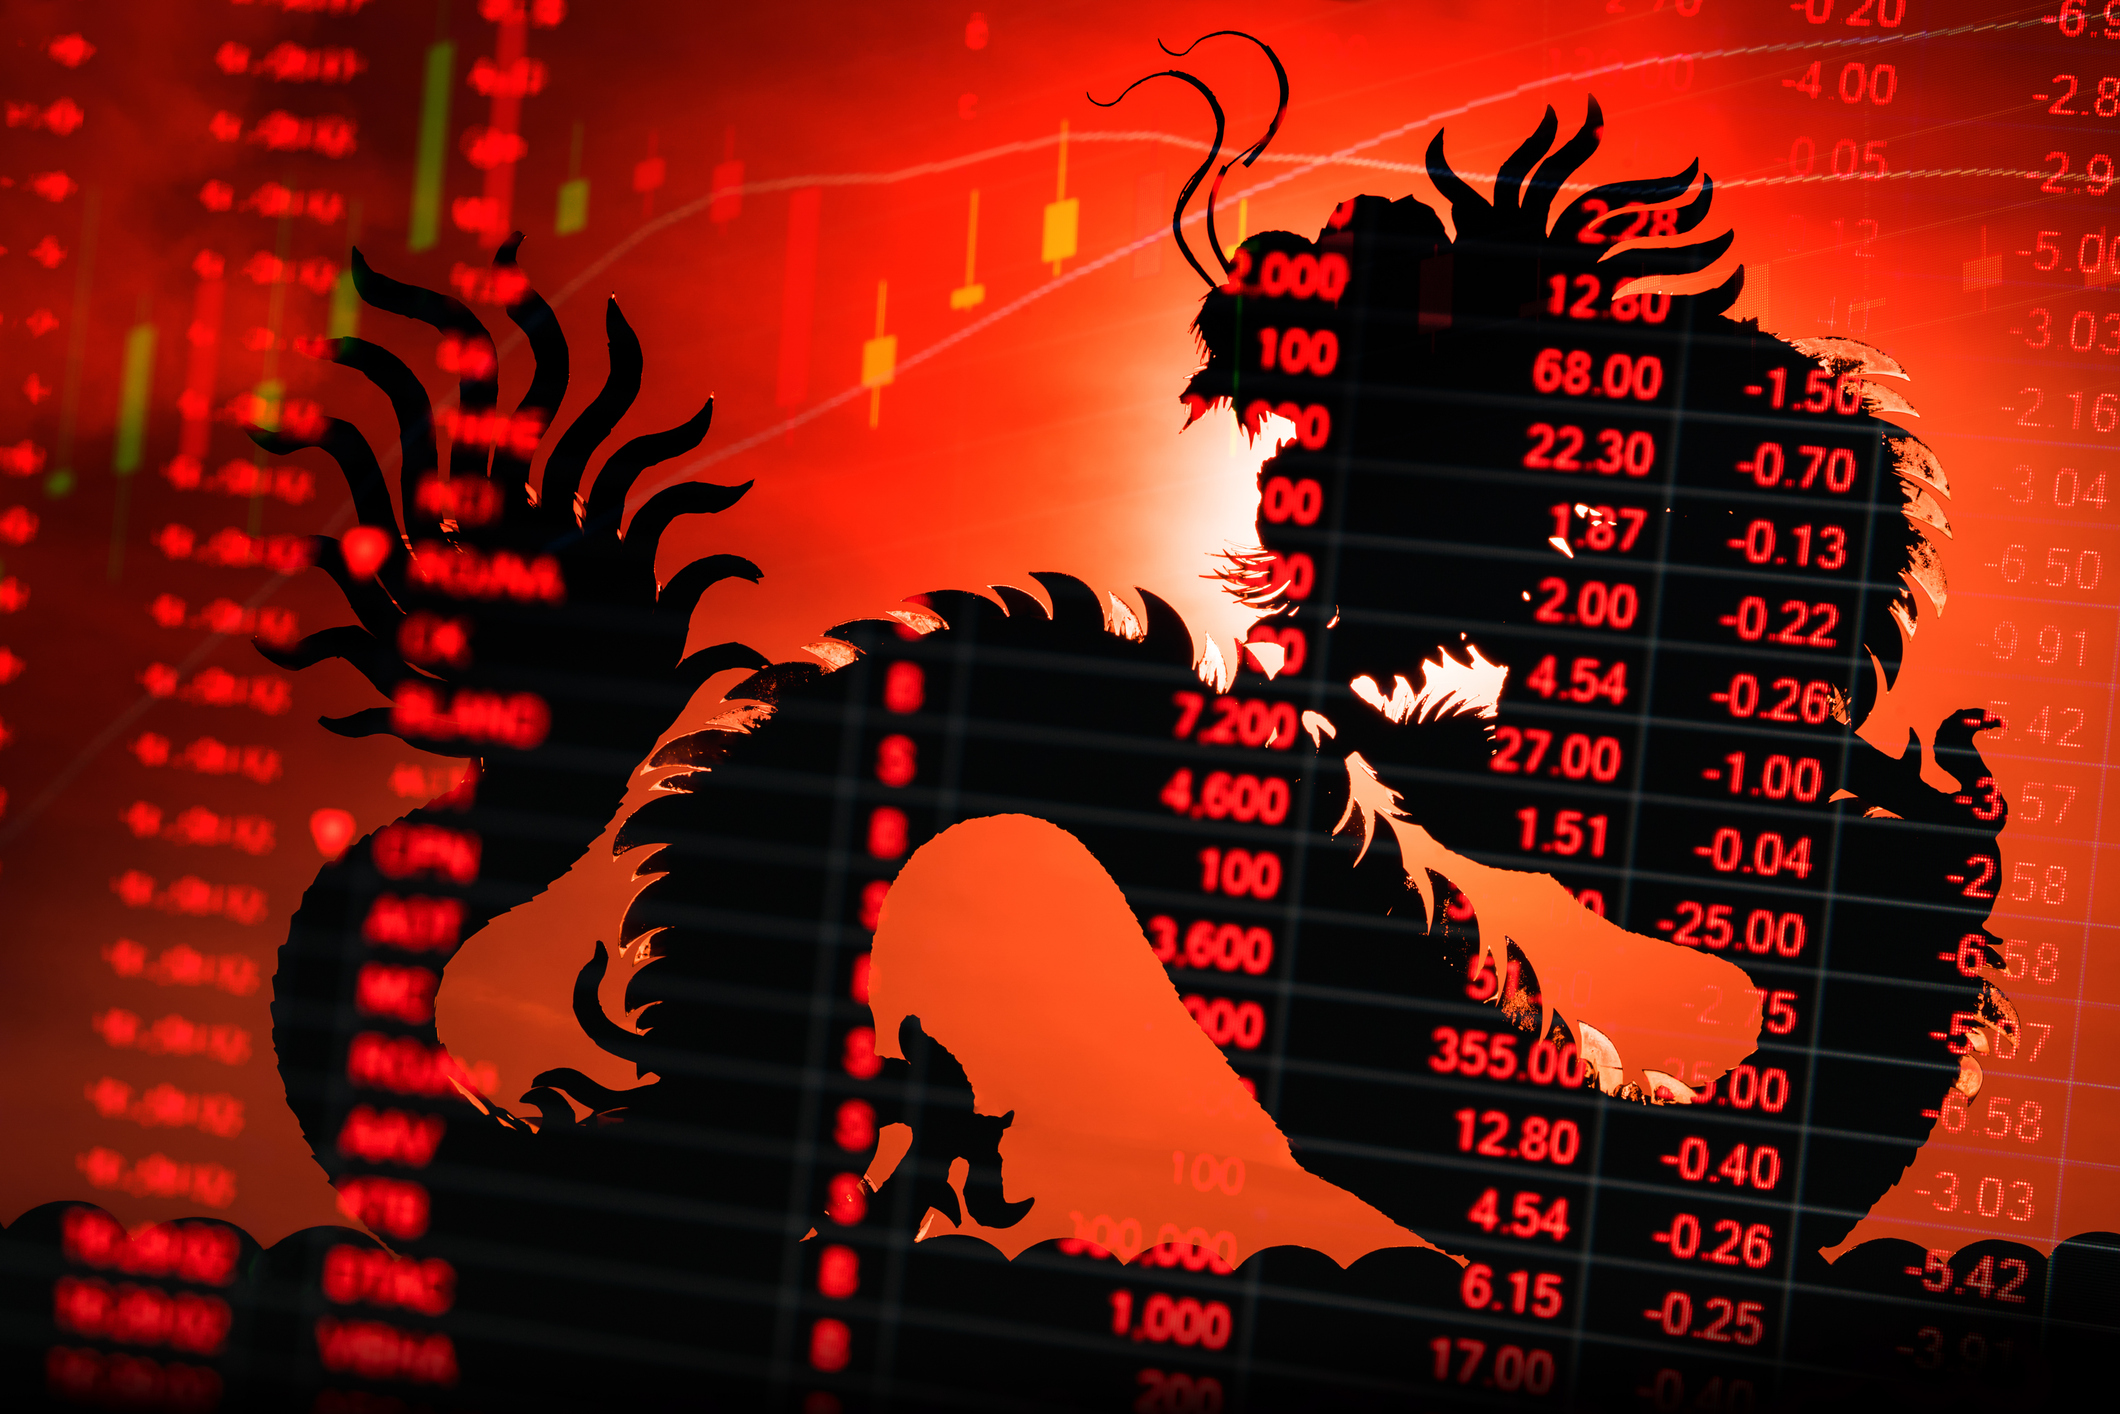 China Has a Fresh $7.2 Trillion Problem That Could Spook Markets